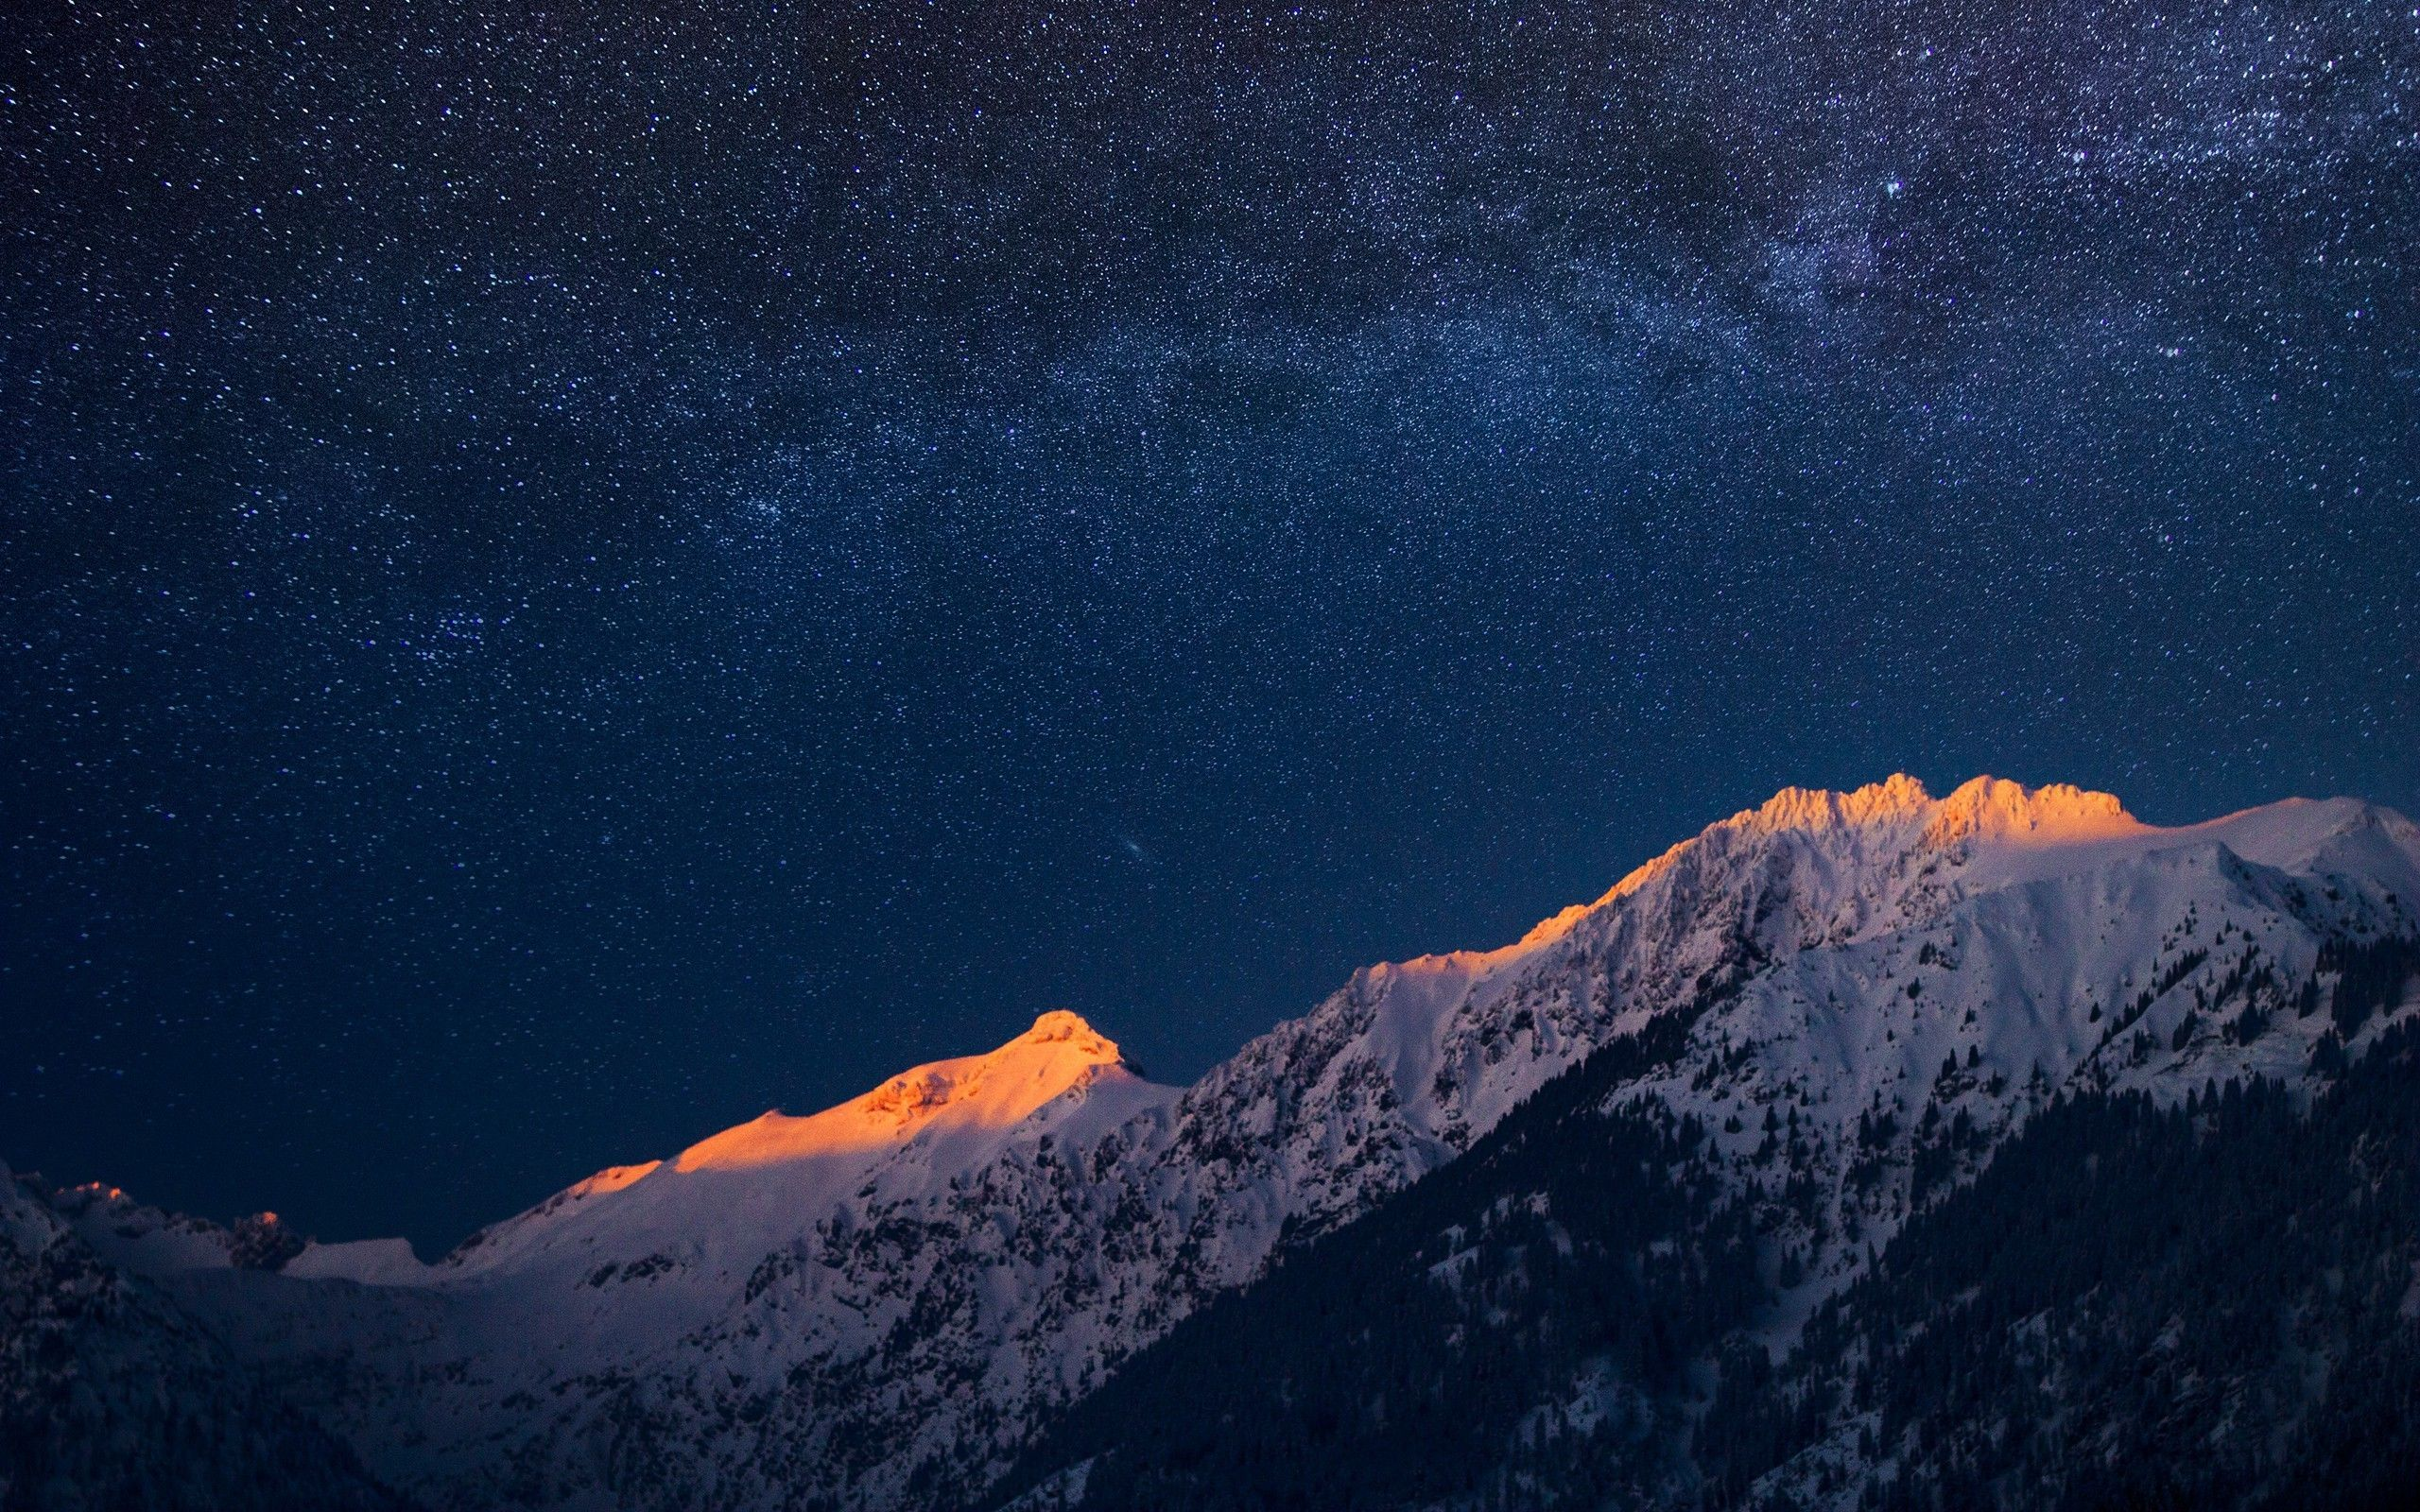 Mountain Night Wallpapers Hd On Wallpaper 1080p Hd Night Sky Wallpaper Sky Pictures Beautiful Night Sky